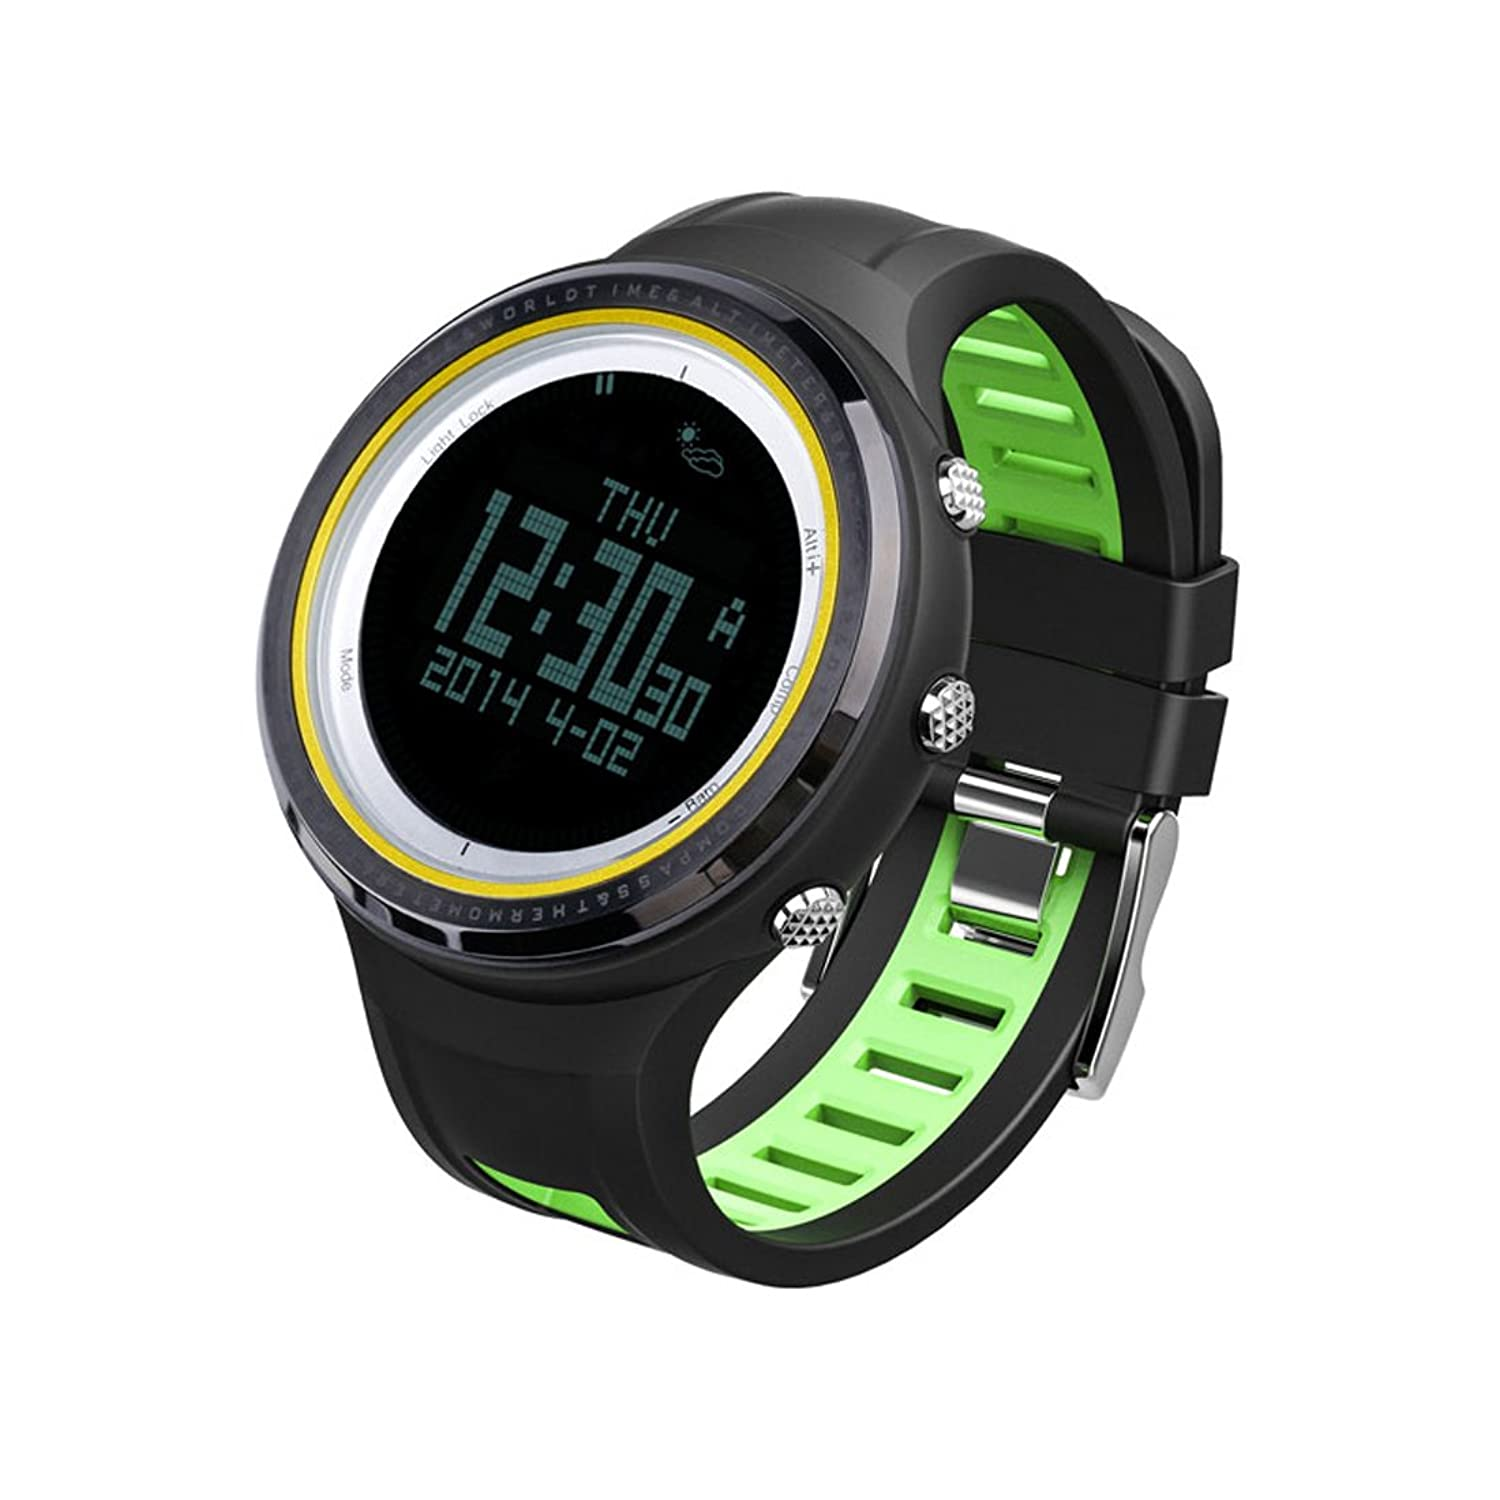 SUNROAD FR800NB Digital Outdoor Sports Men Watch -5ATM Waterproof Backlight Compass Pedometer Thermometer Relogio